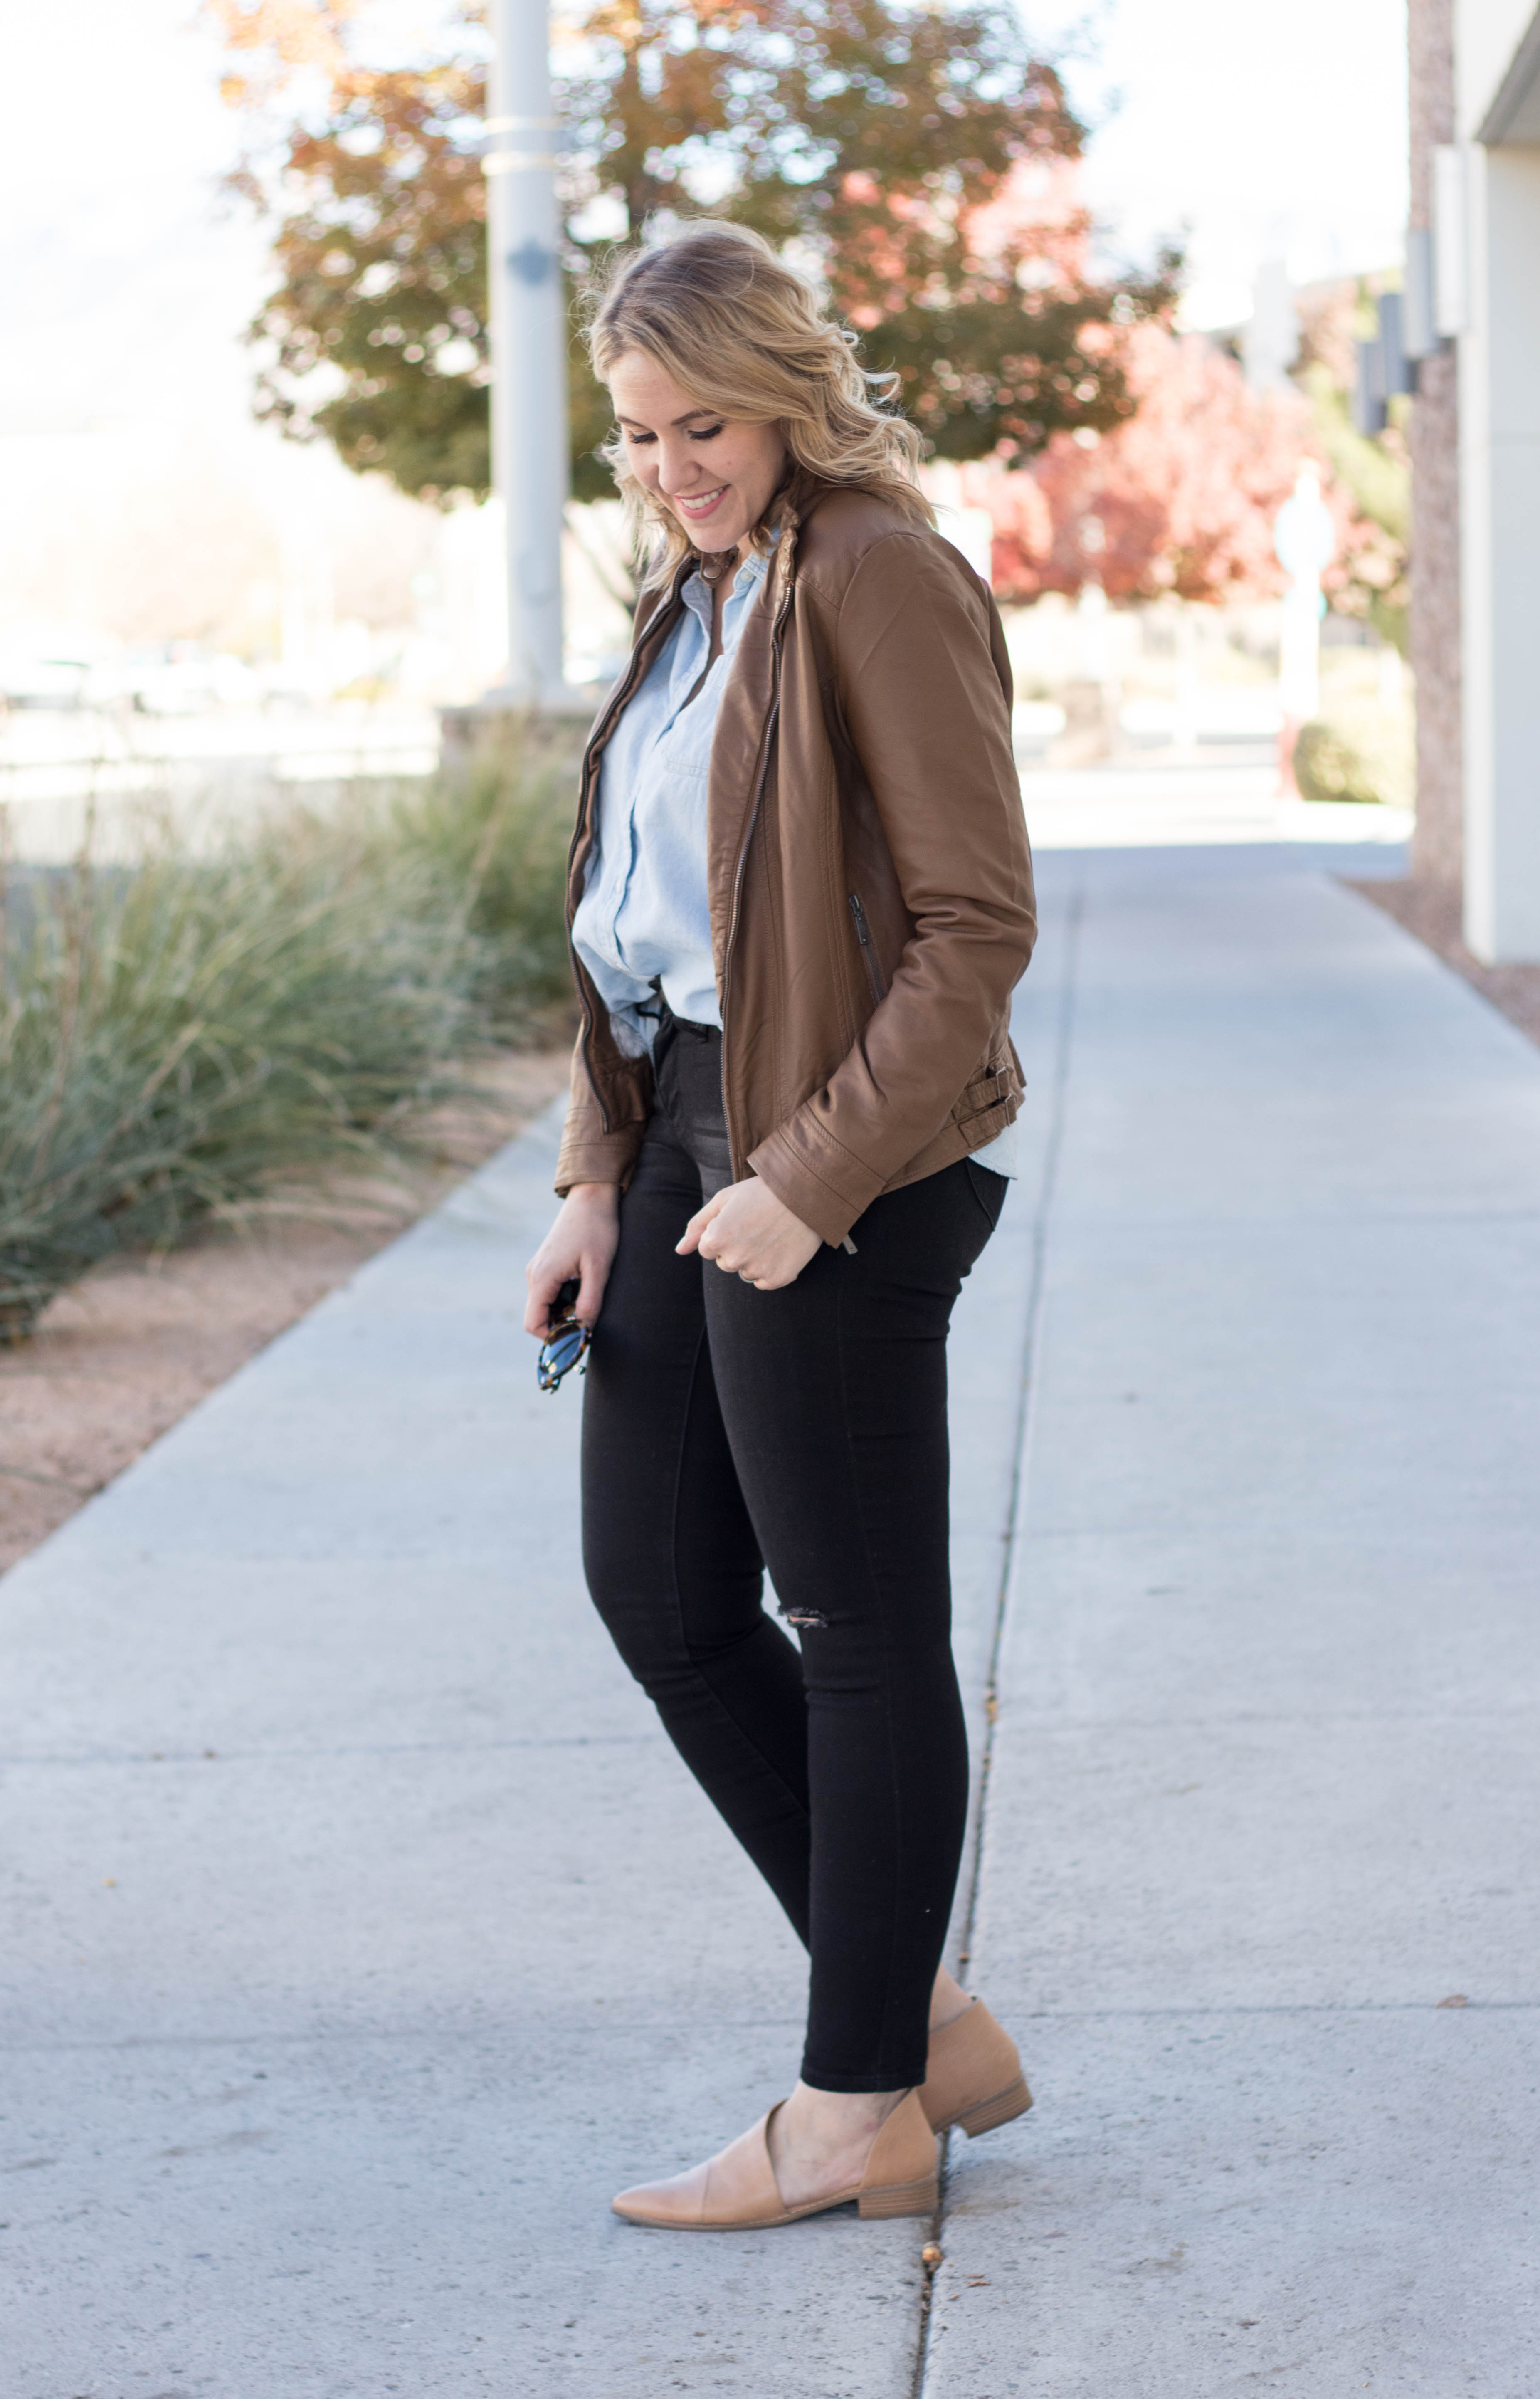 free people bootie dupes target style #targetstyle #denim #denimoutfit